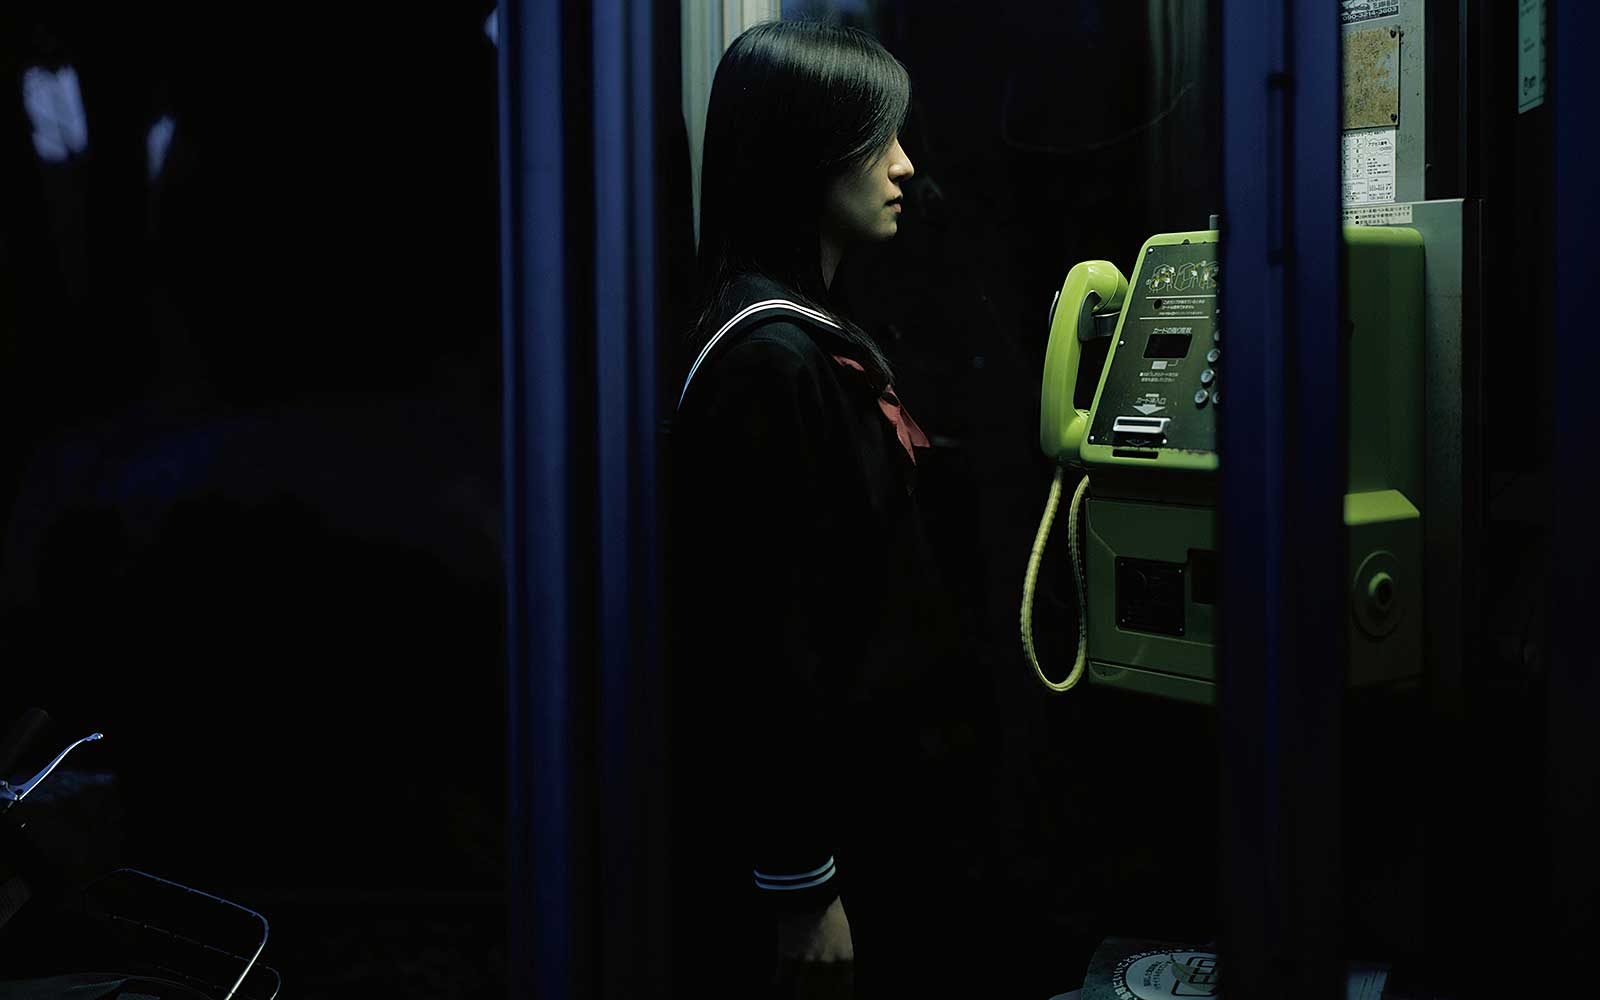 There's a Phone Booth in Japan Where People Can Call the Dead